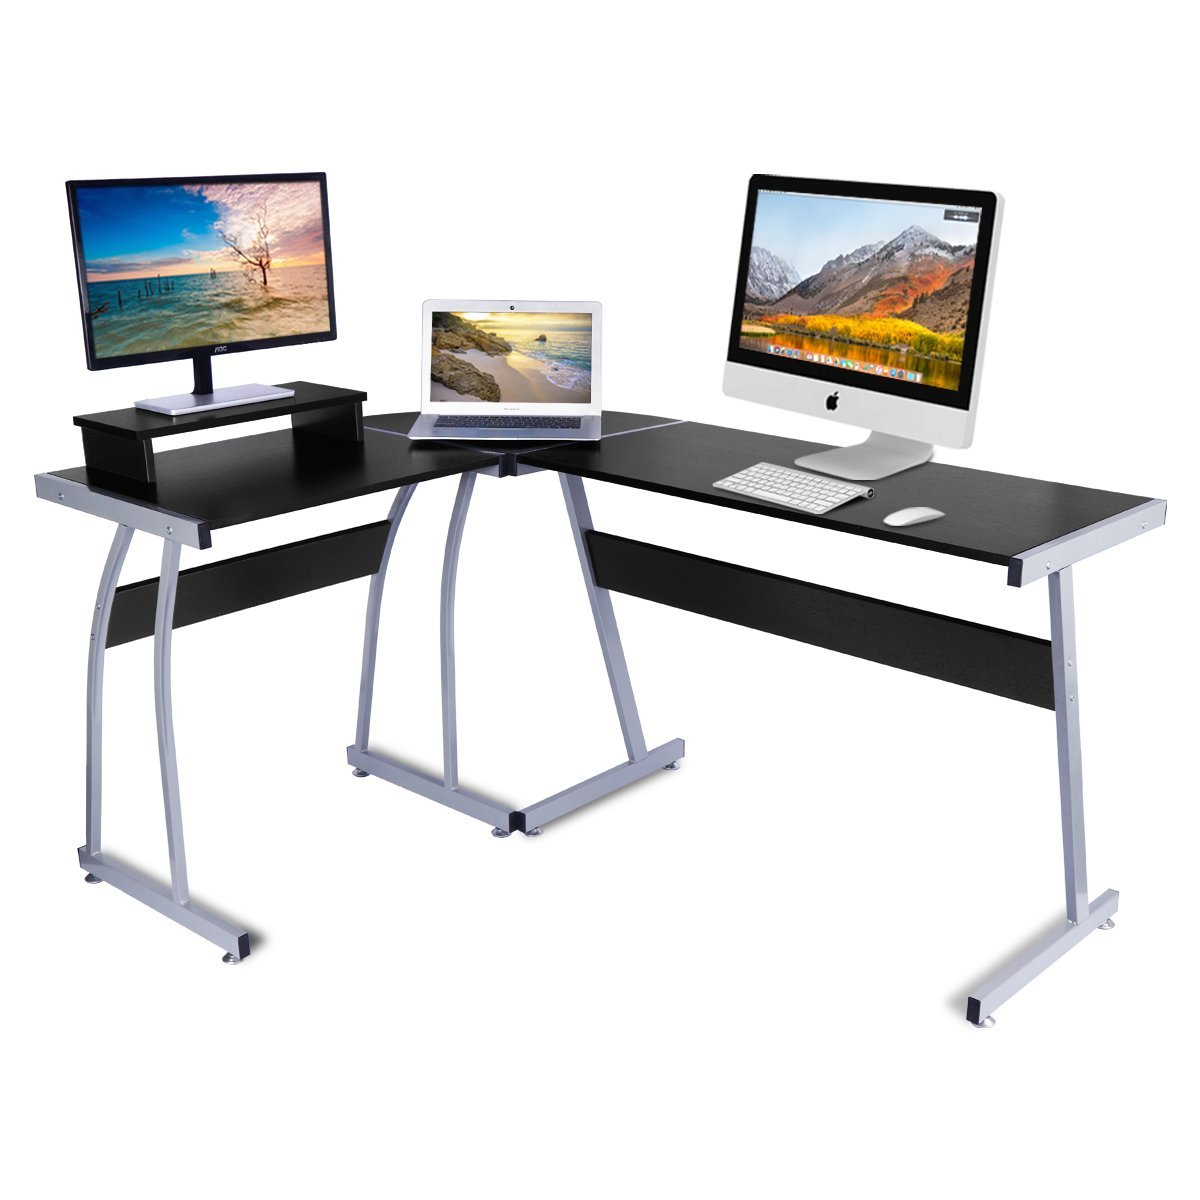 LASUAVY Computer Desk, L-Shaped Large Corner PC Laptop Study Table Workstation Gaming Desk Home Office - Free Monitor Stand - Wood & Metal - Black Wood Grain